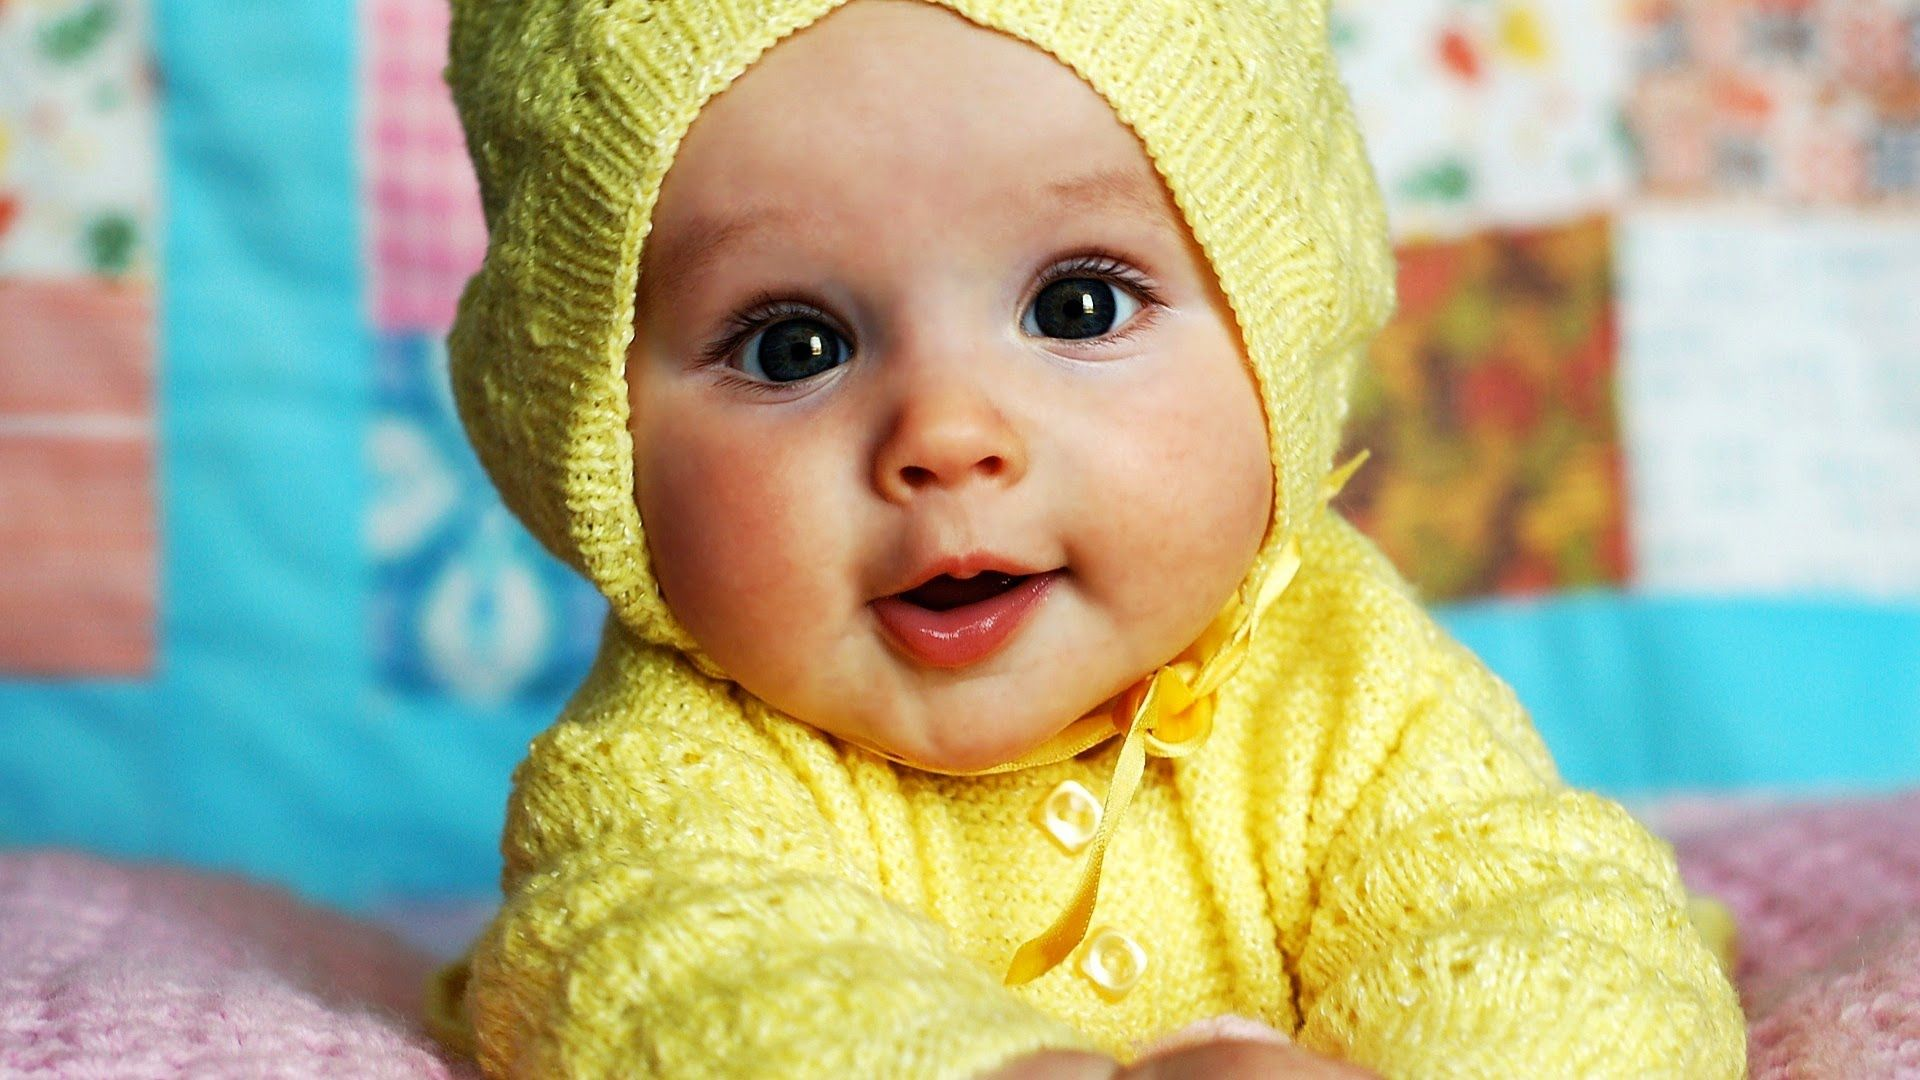 cute baby boy pictures | hd wallpapers download | babies | cute